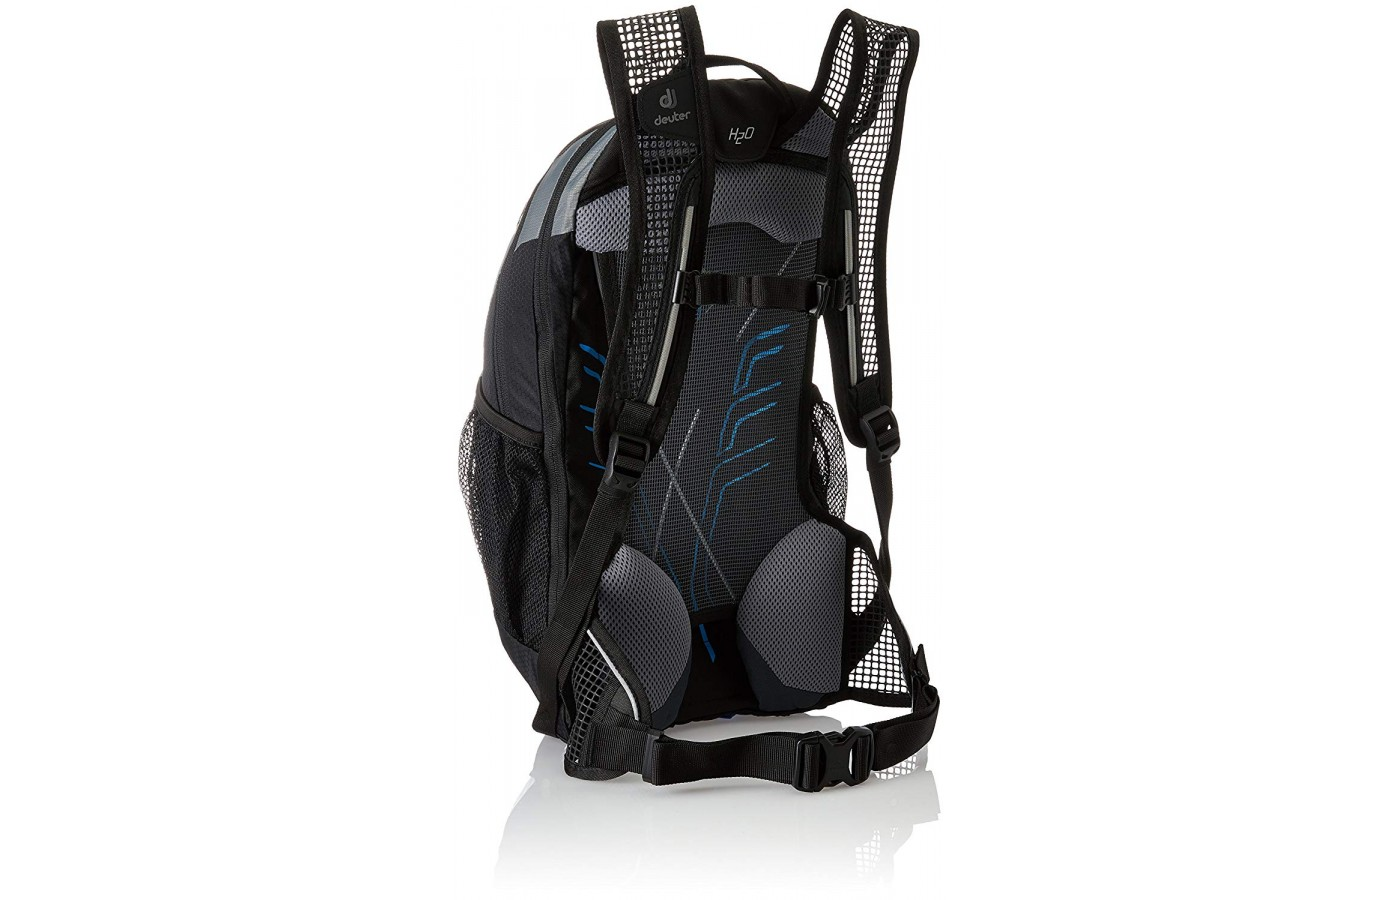 Deuter's unique Aircomfort system.